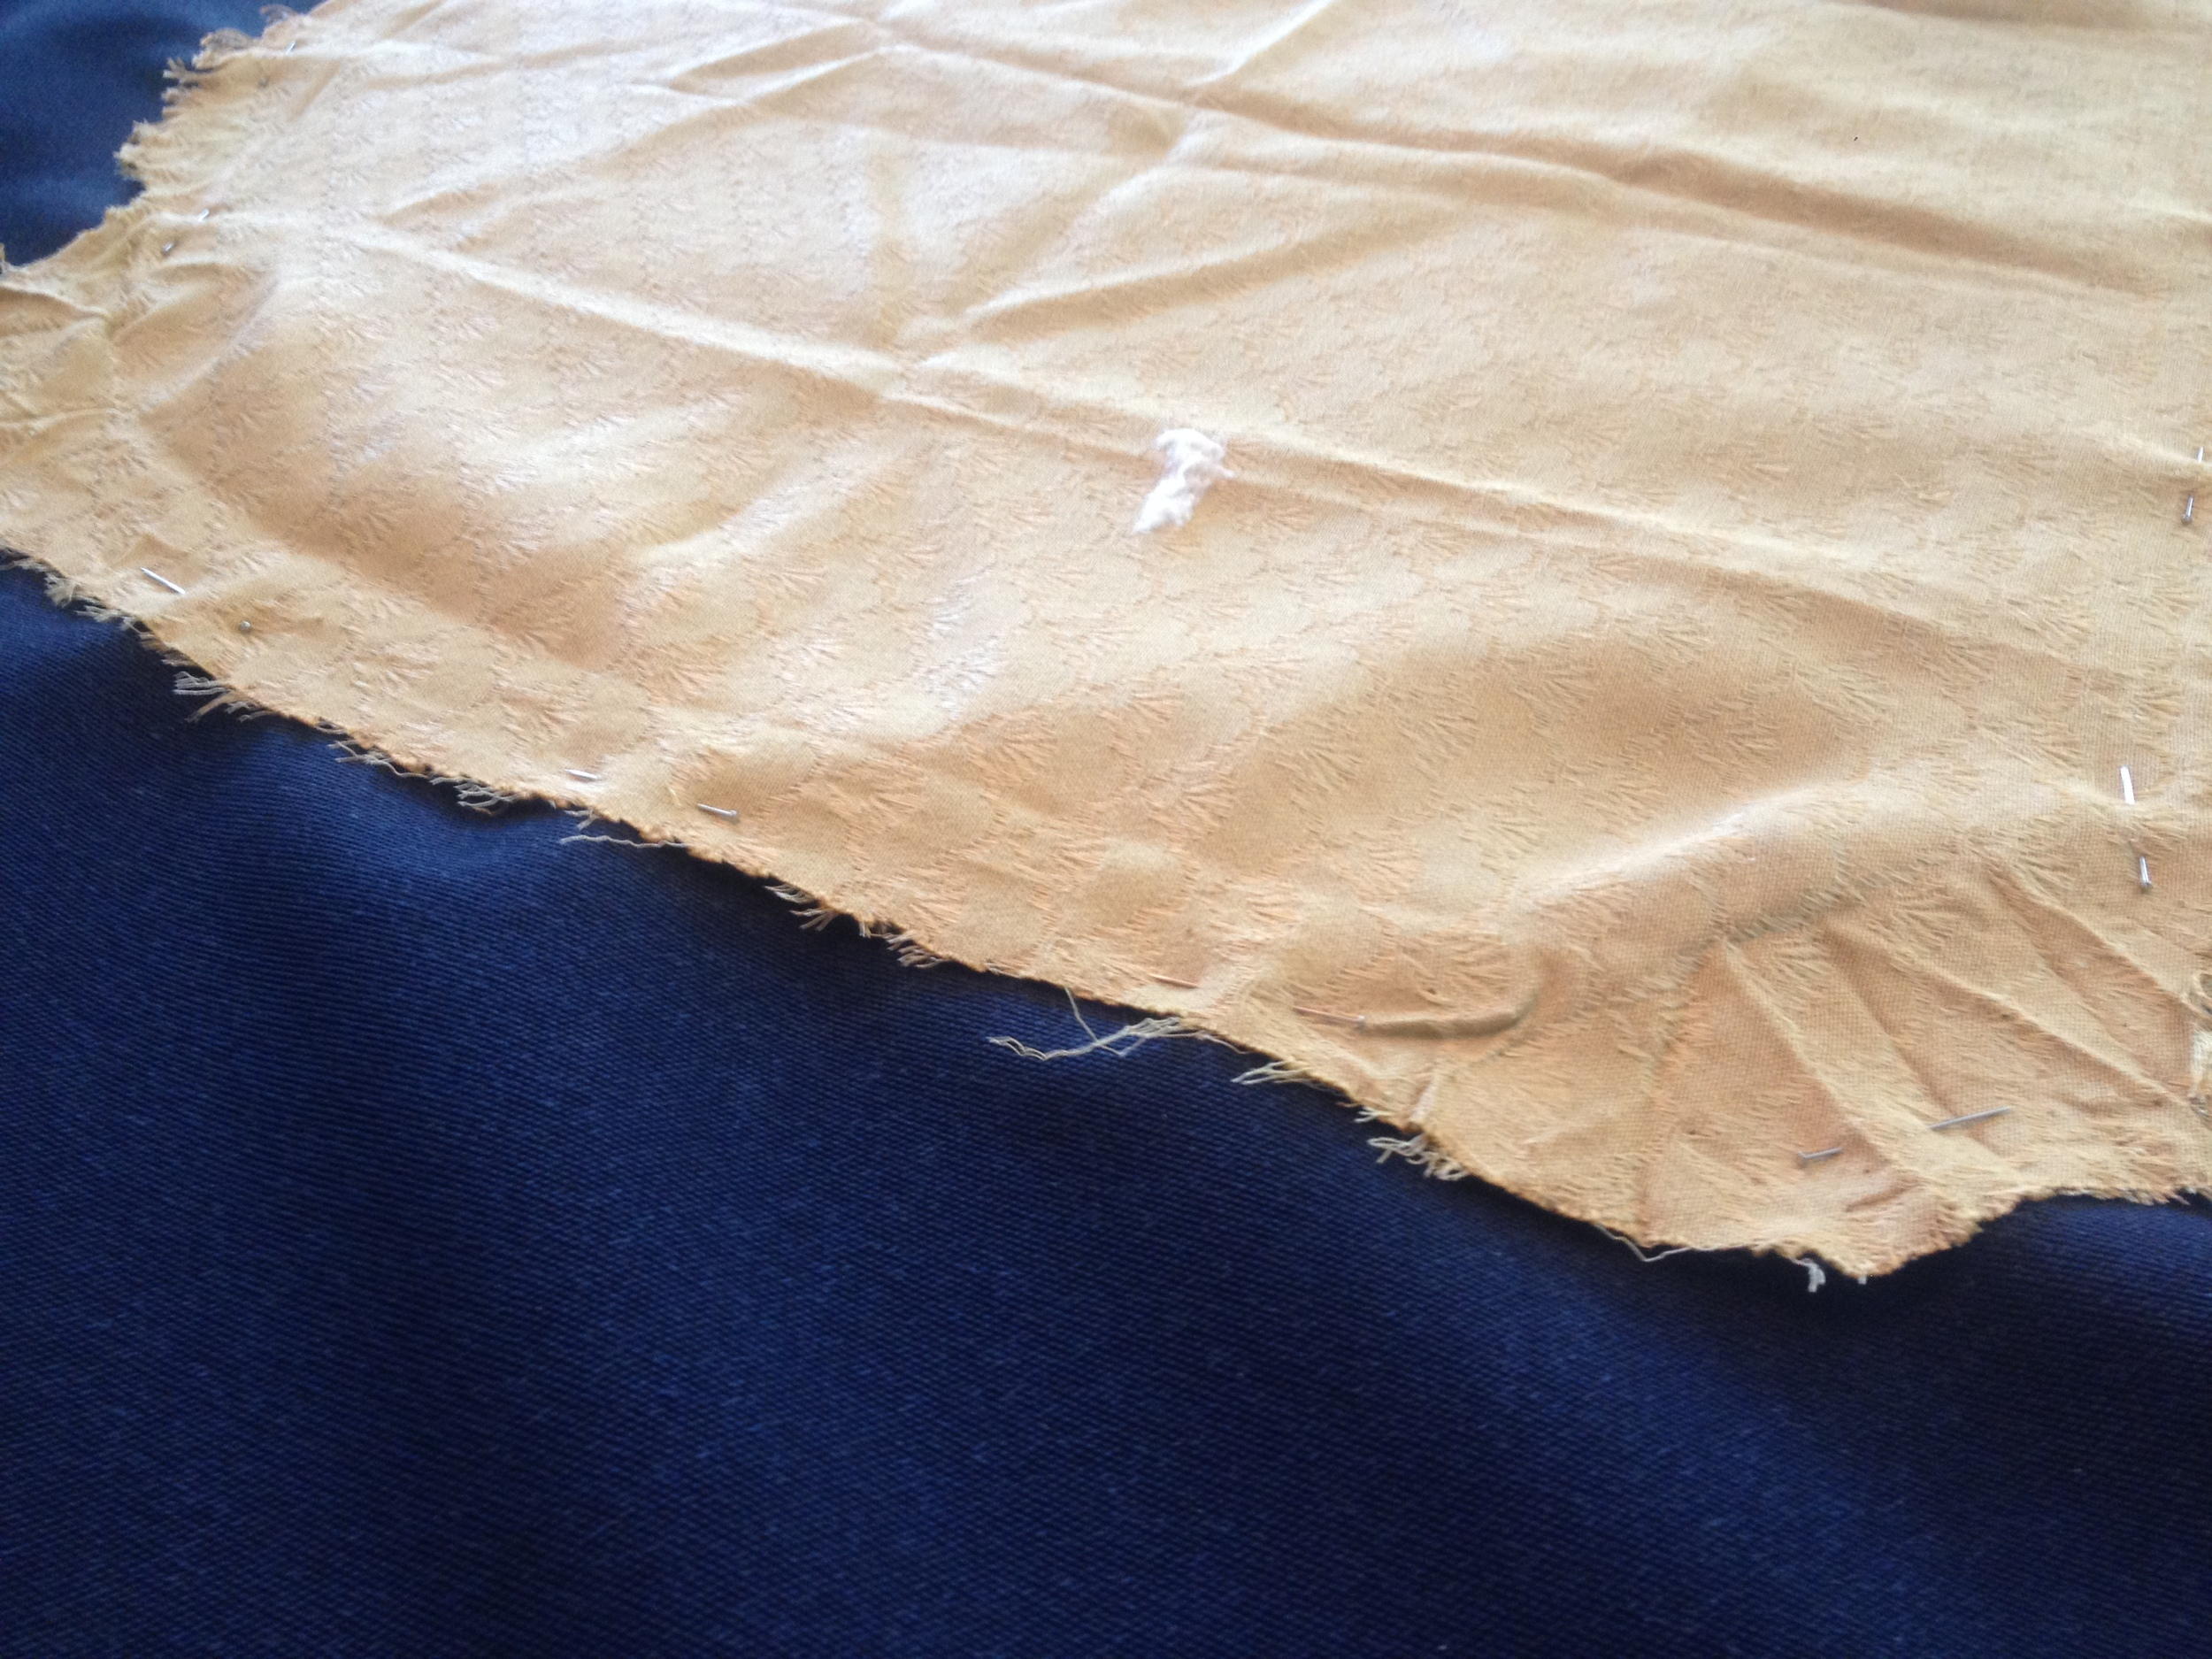 Pin down the edges of the old fabric over the new, taking into consideration the grain and pattern.